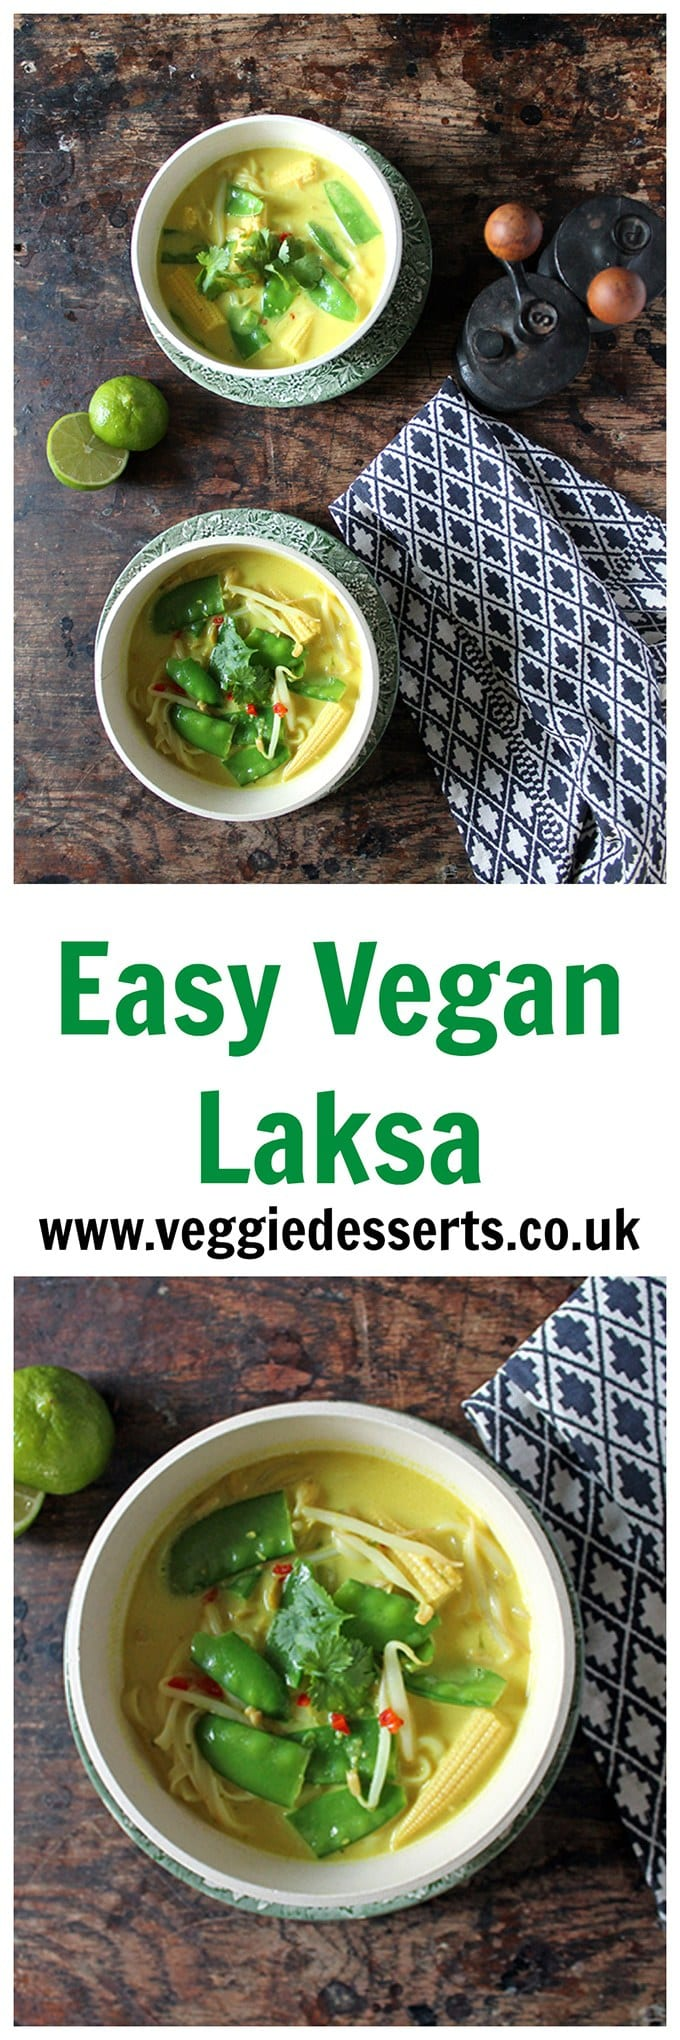 This easy vegan laksa (Malaysian soup) only takes just 10 minutes to prepare, and it's bursting with flavour from the coconut milk, chilli and turmeric. It's a filling meal, warming starter or easy side dish.